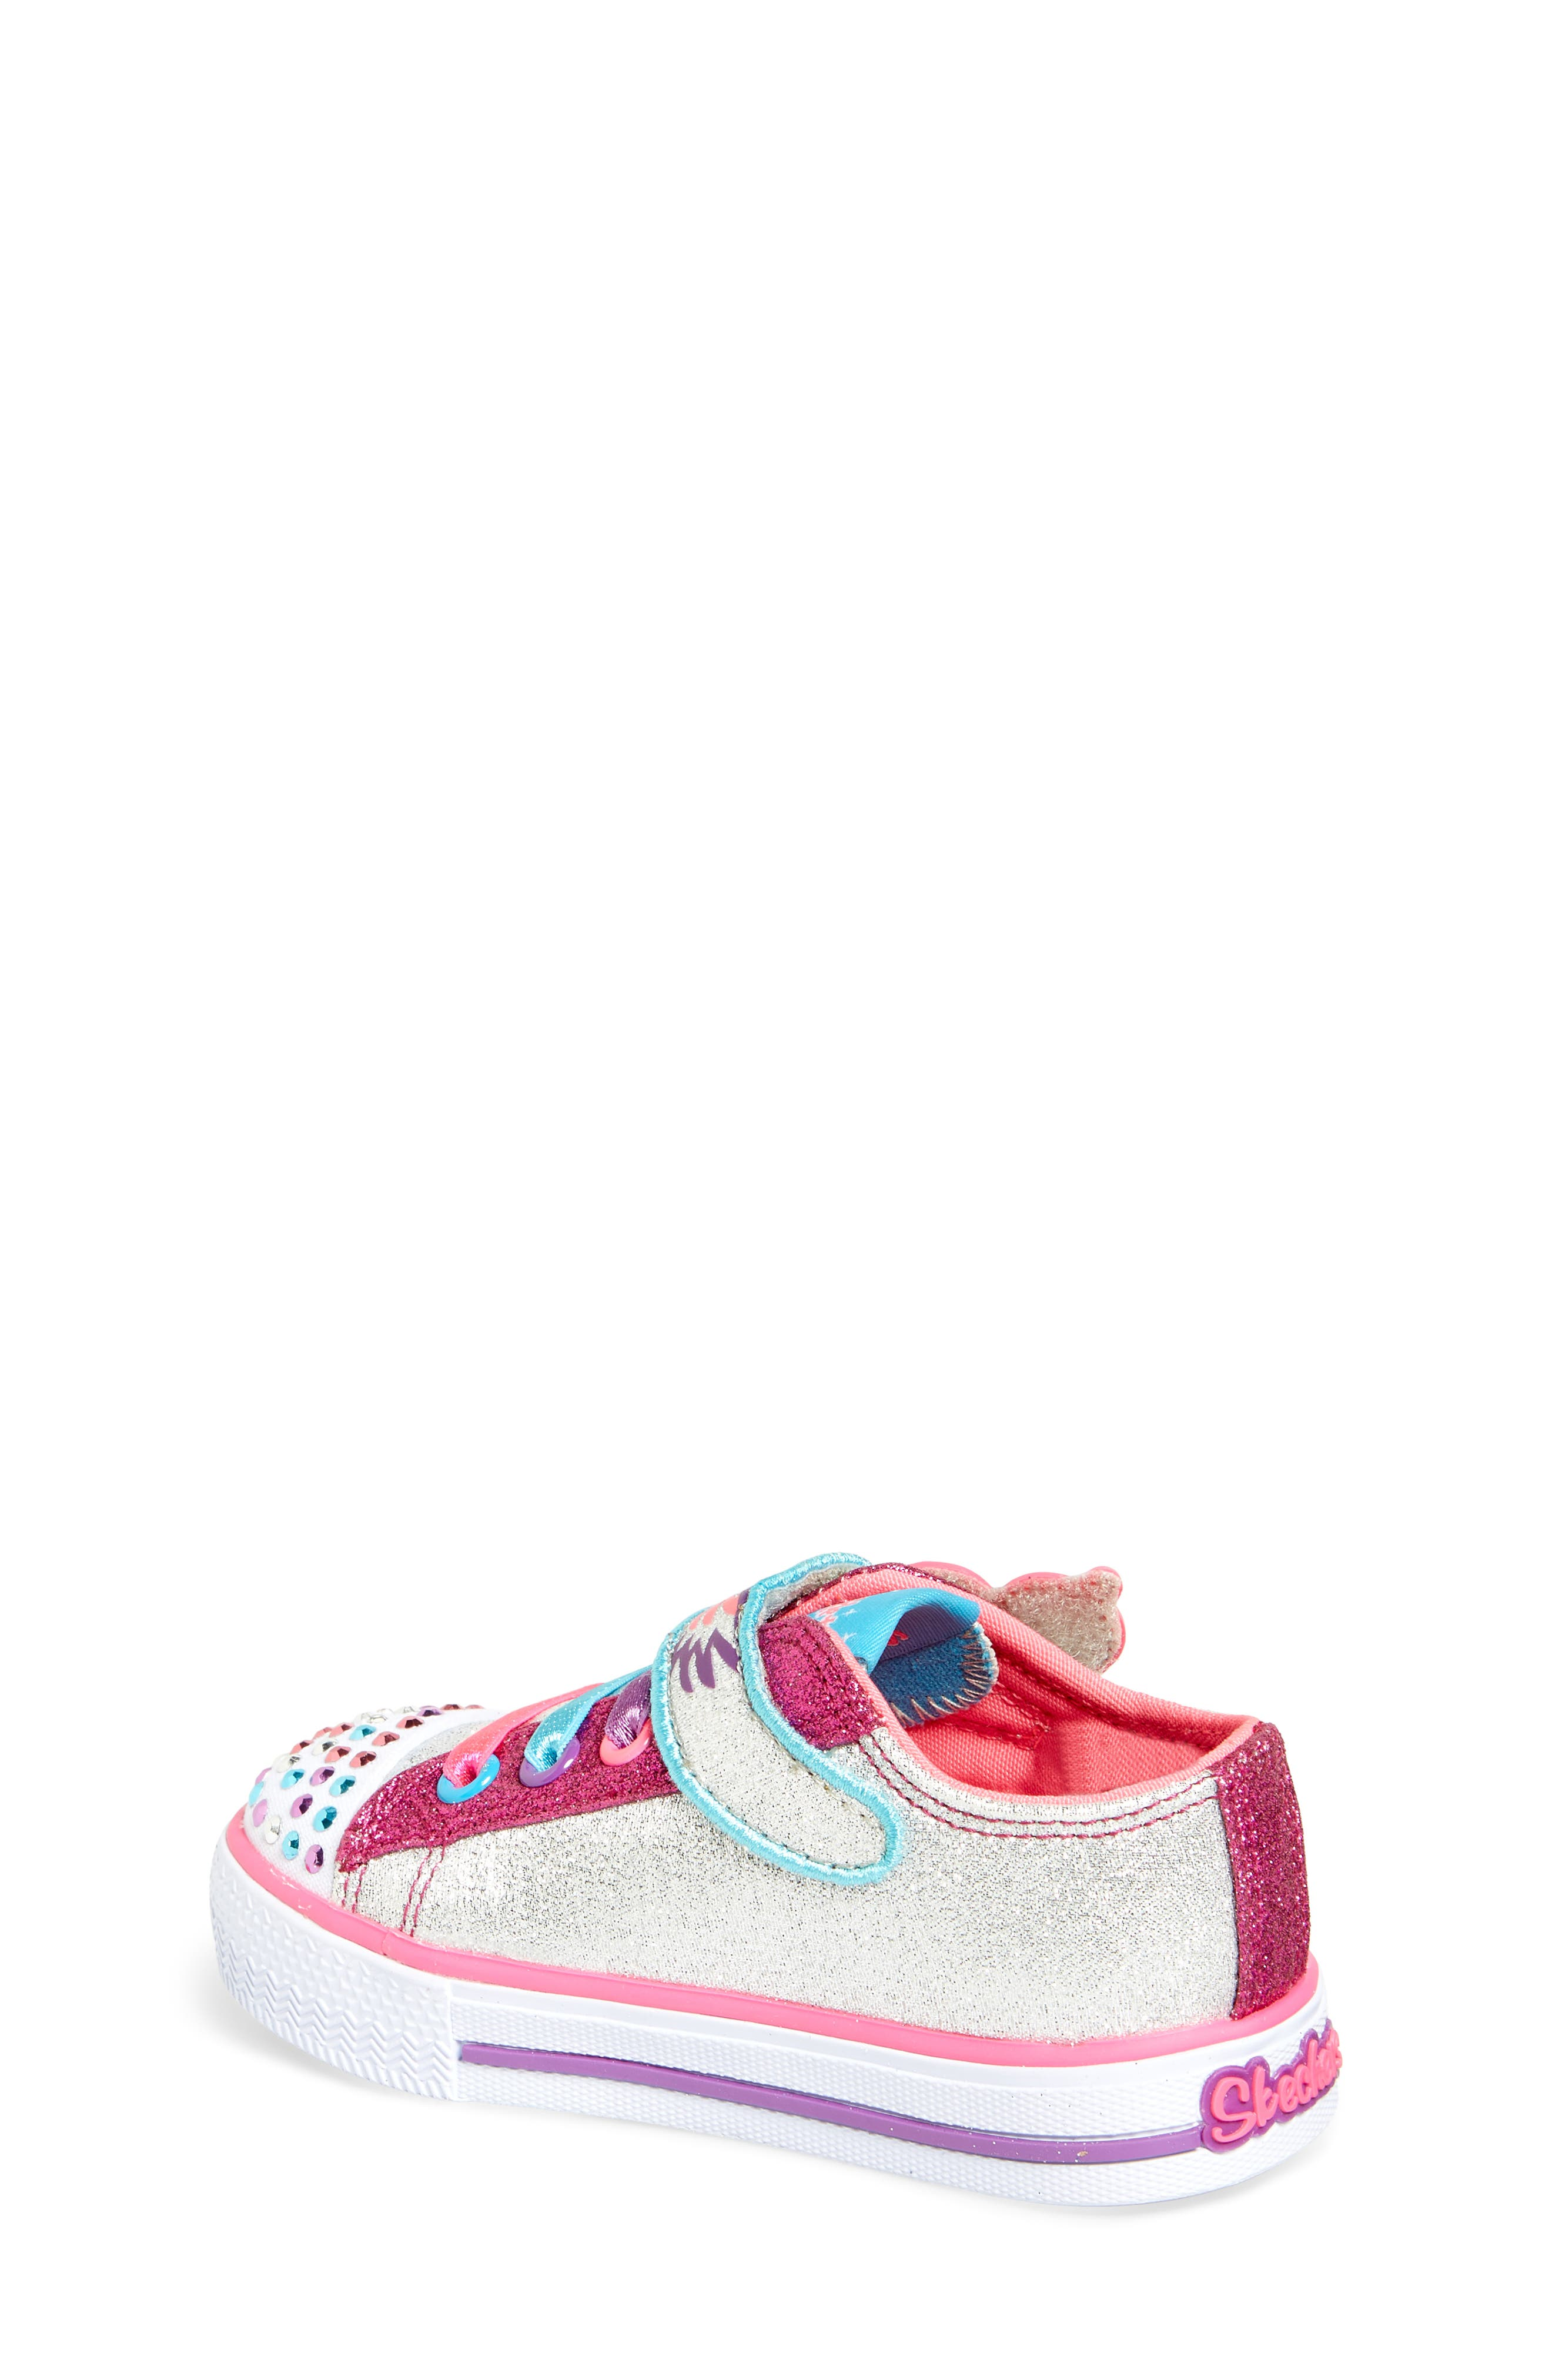 Shuffles - Party Pets Sneaker,                             Alternate thumbnail 2, color,                             040